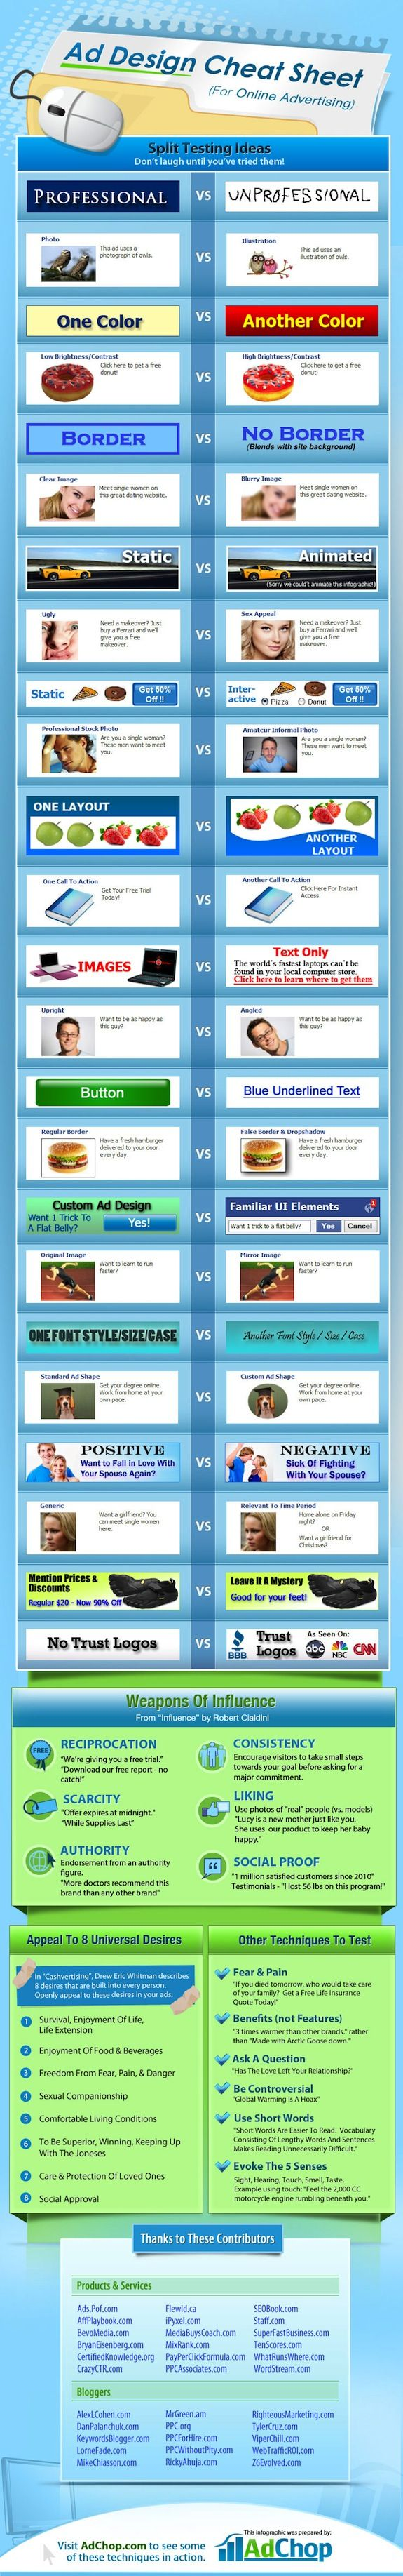 The Ad Design Cheat Sheet for Online Advertising